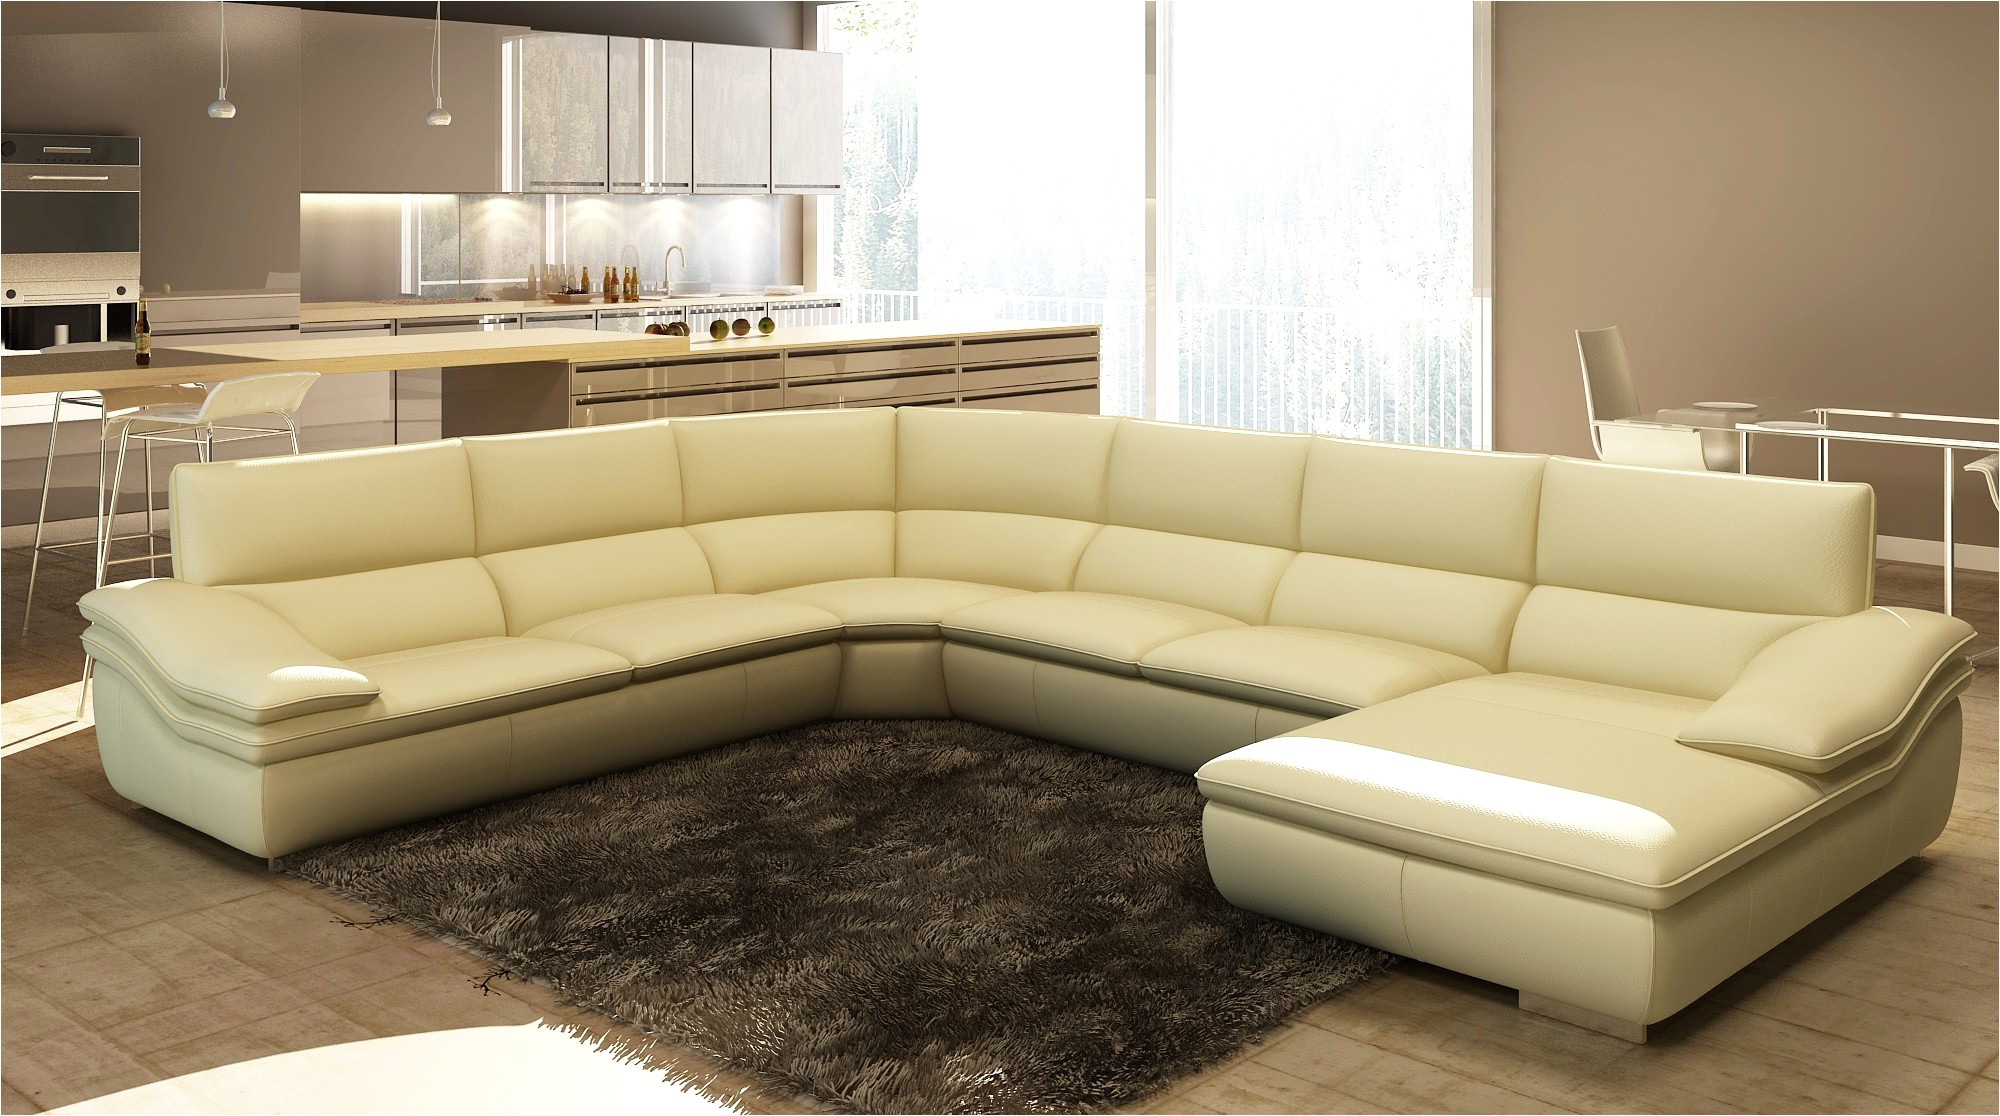 Modern Italian Sectional sofa 50 Elegant Italian Leather Sectional sofa Graphics 50 Photos